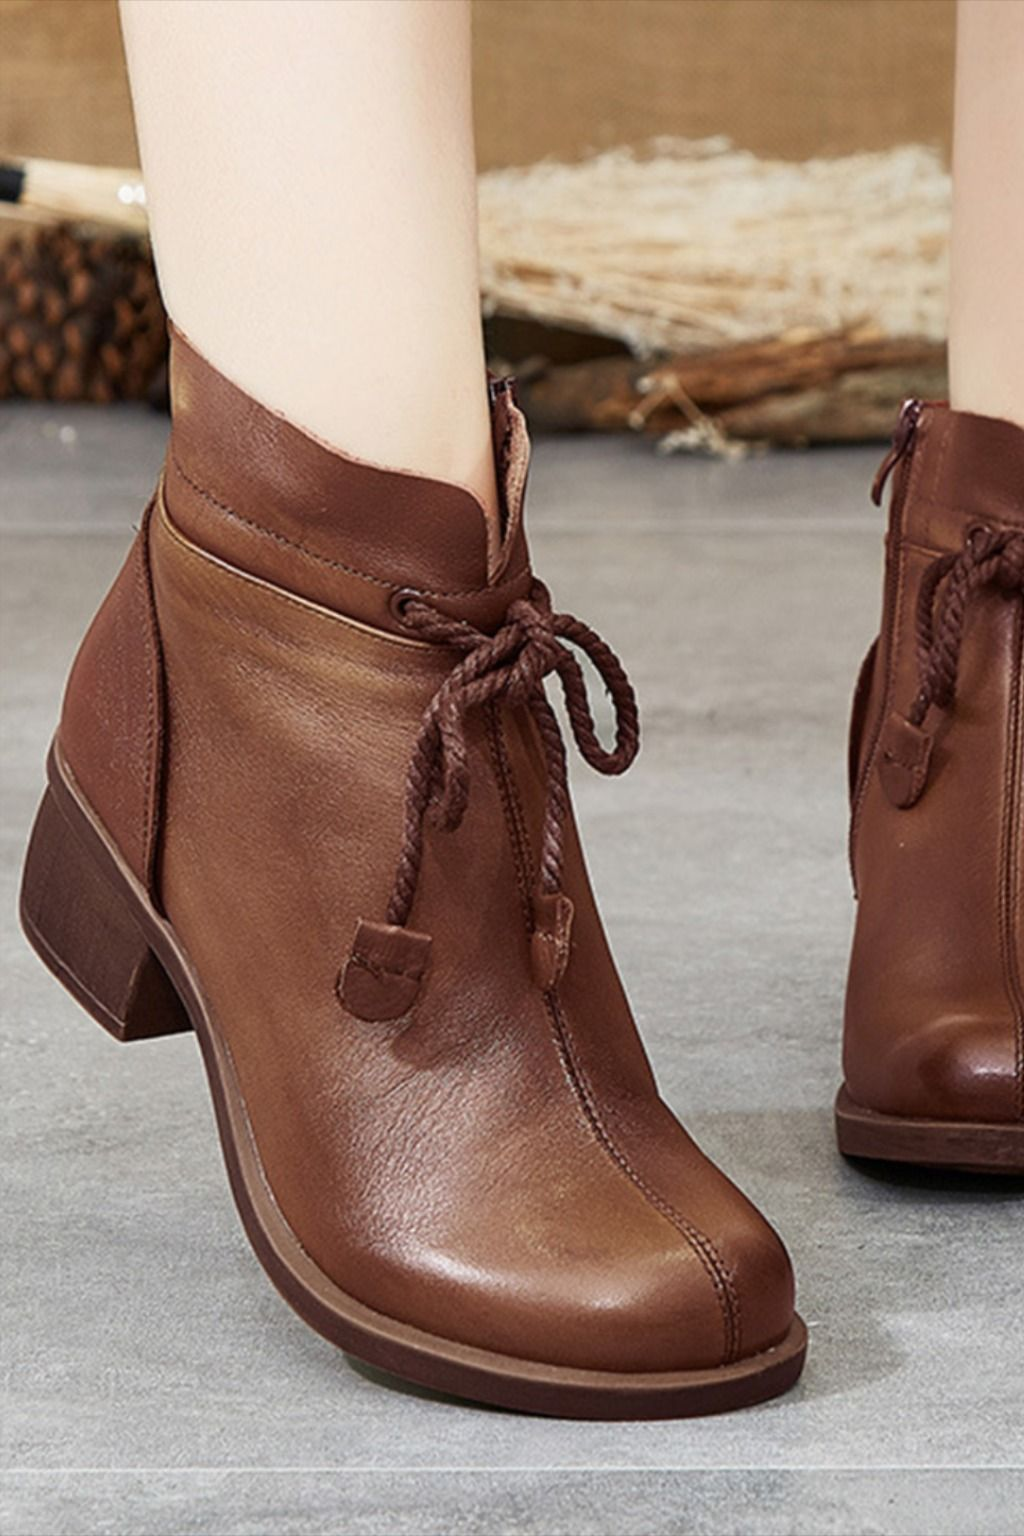 Leather Handmade Casual Retro Short Boots | Gift Shoes